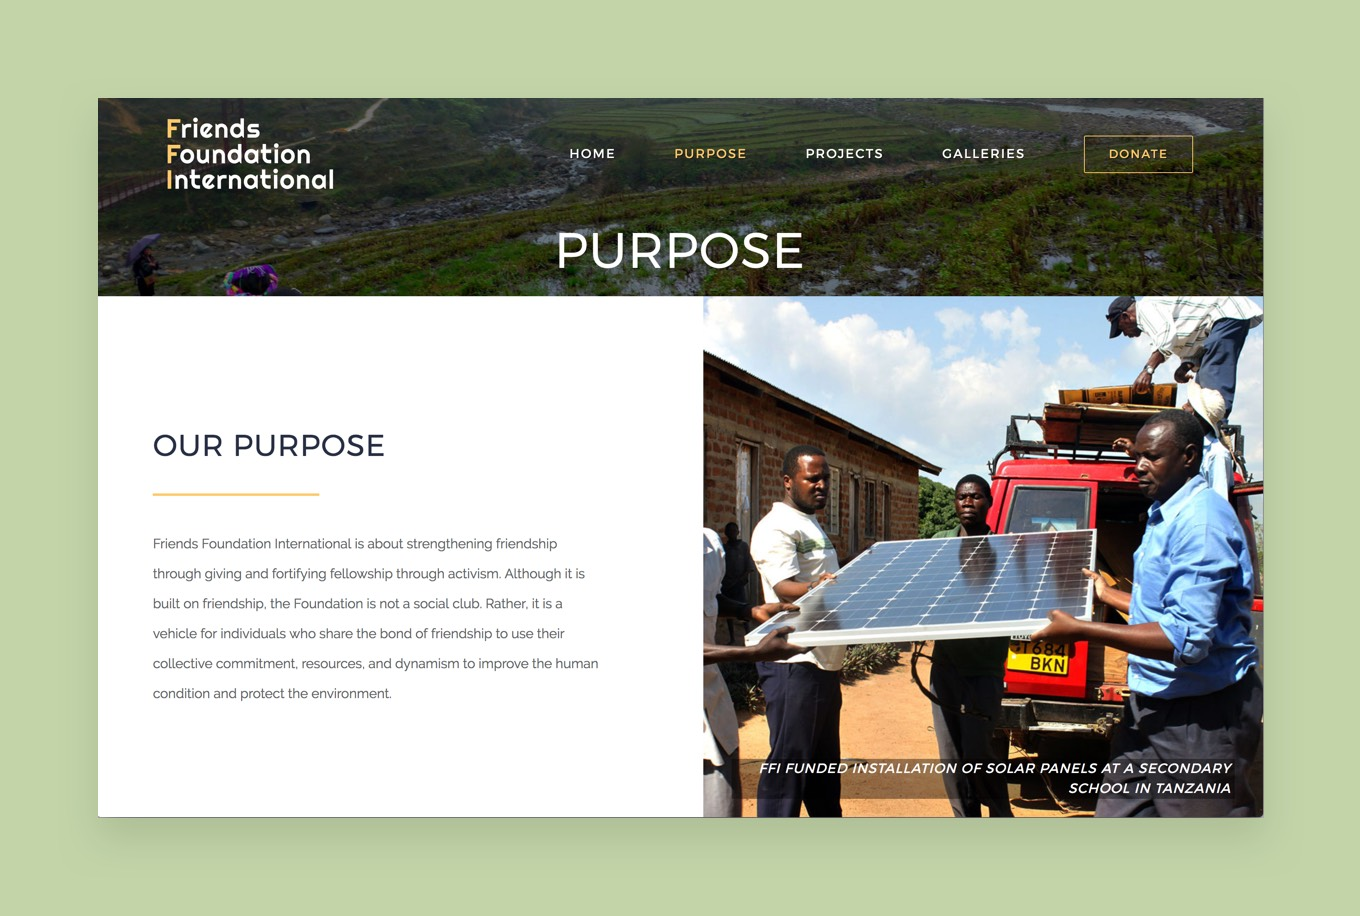 Screenshot of the Friends Fondation International Purpose page